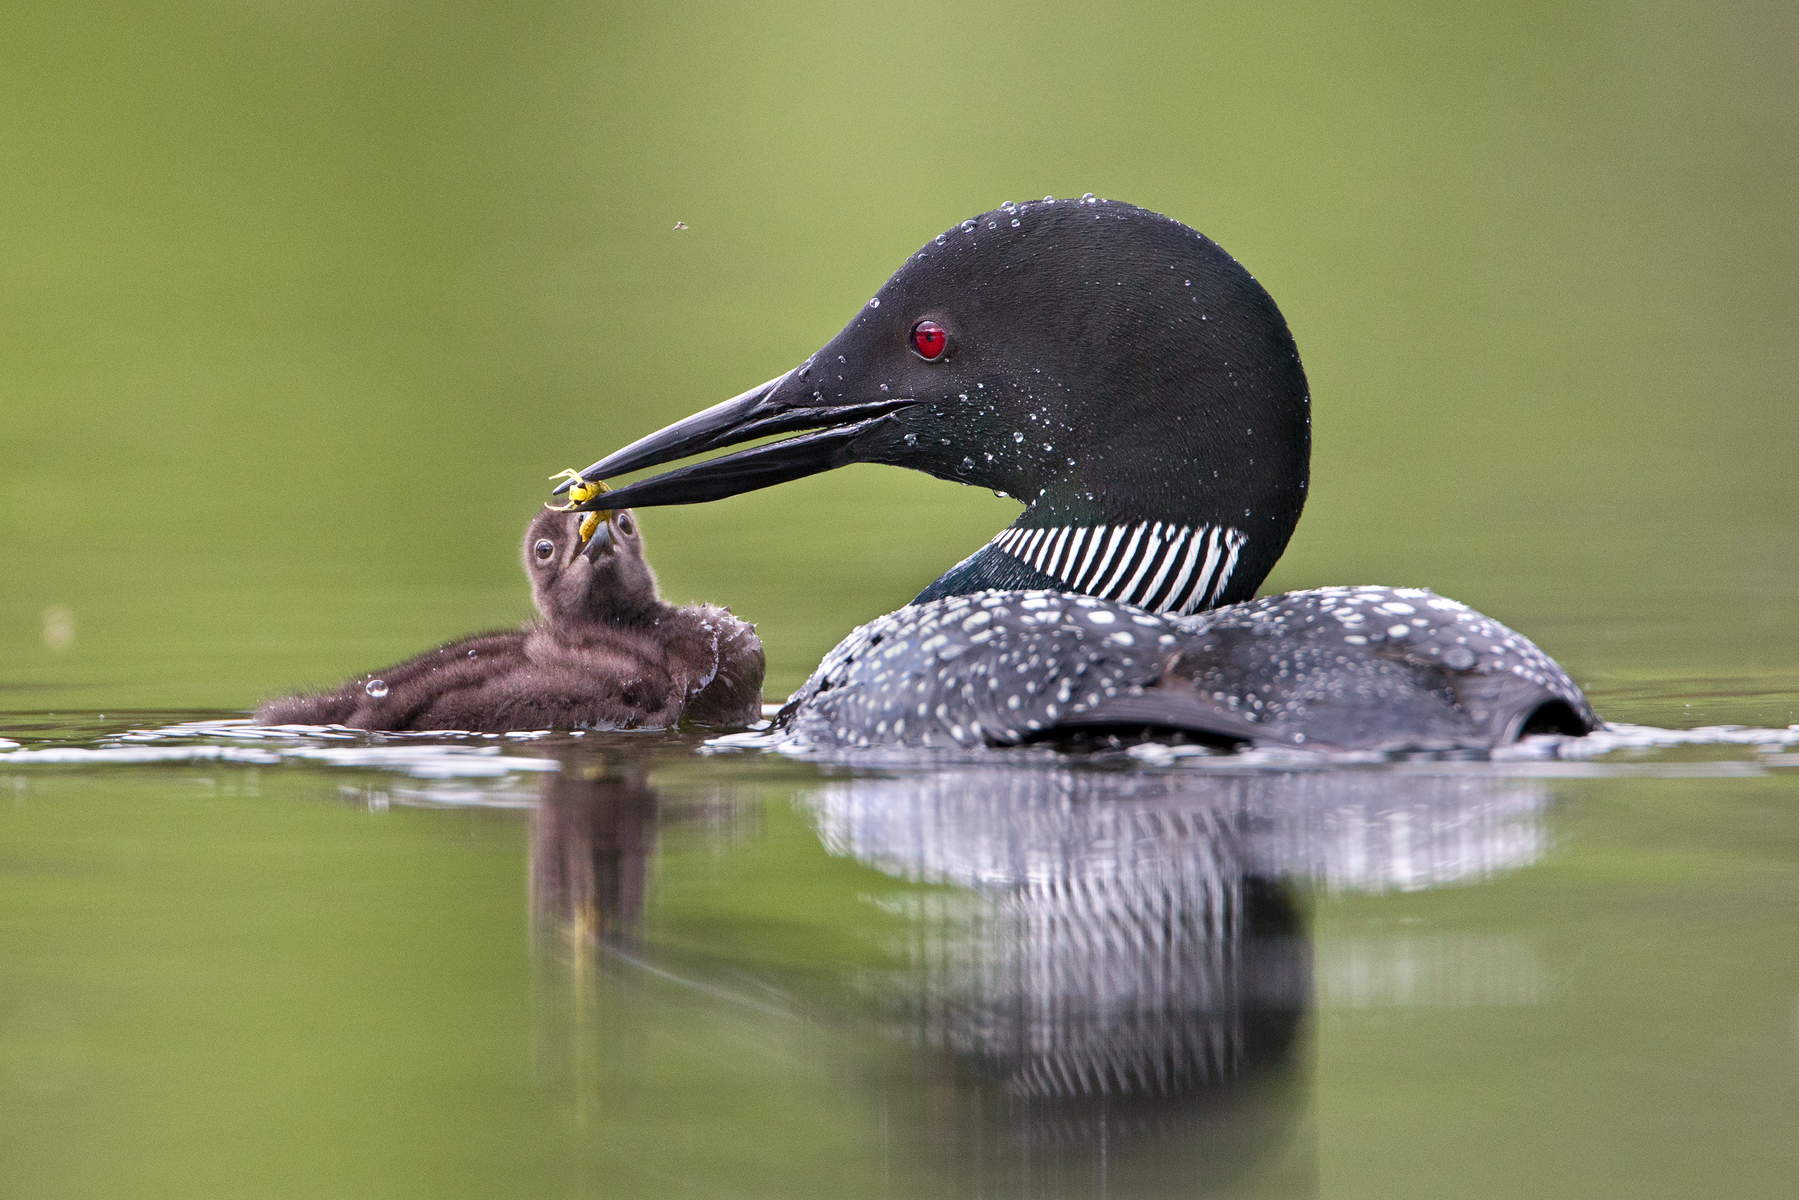 A Common Loon feeds its chick a dragonfly at a lake in the interior of British Columbia, Canada. The future goal of the Biodiversity Research Institute is to be able to transport loon chicks from places like Canada and the eastern USA, to select habitats in the Greater Yellowstone Ecosystem.